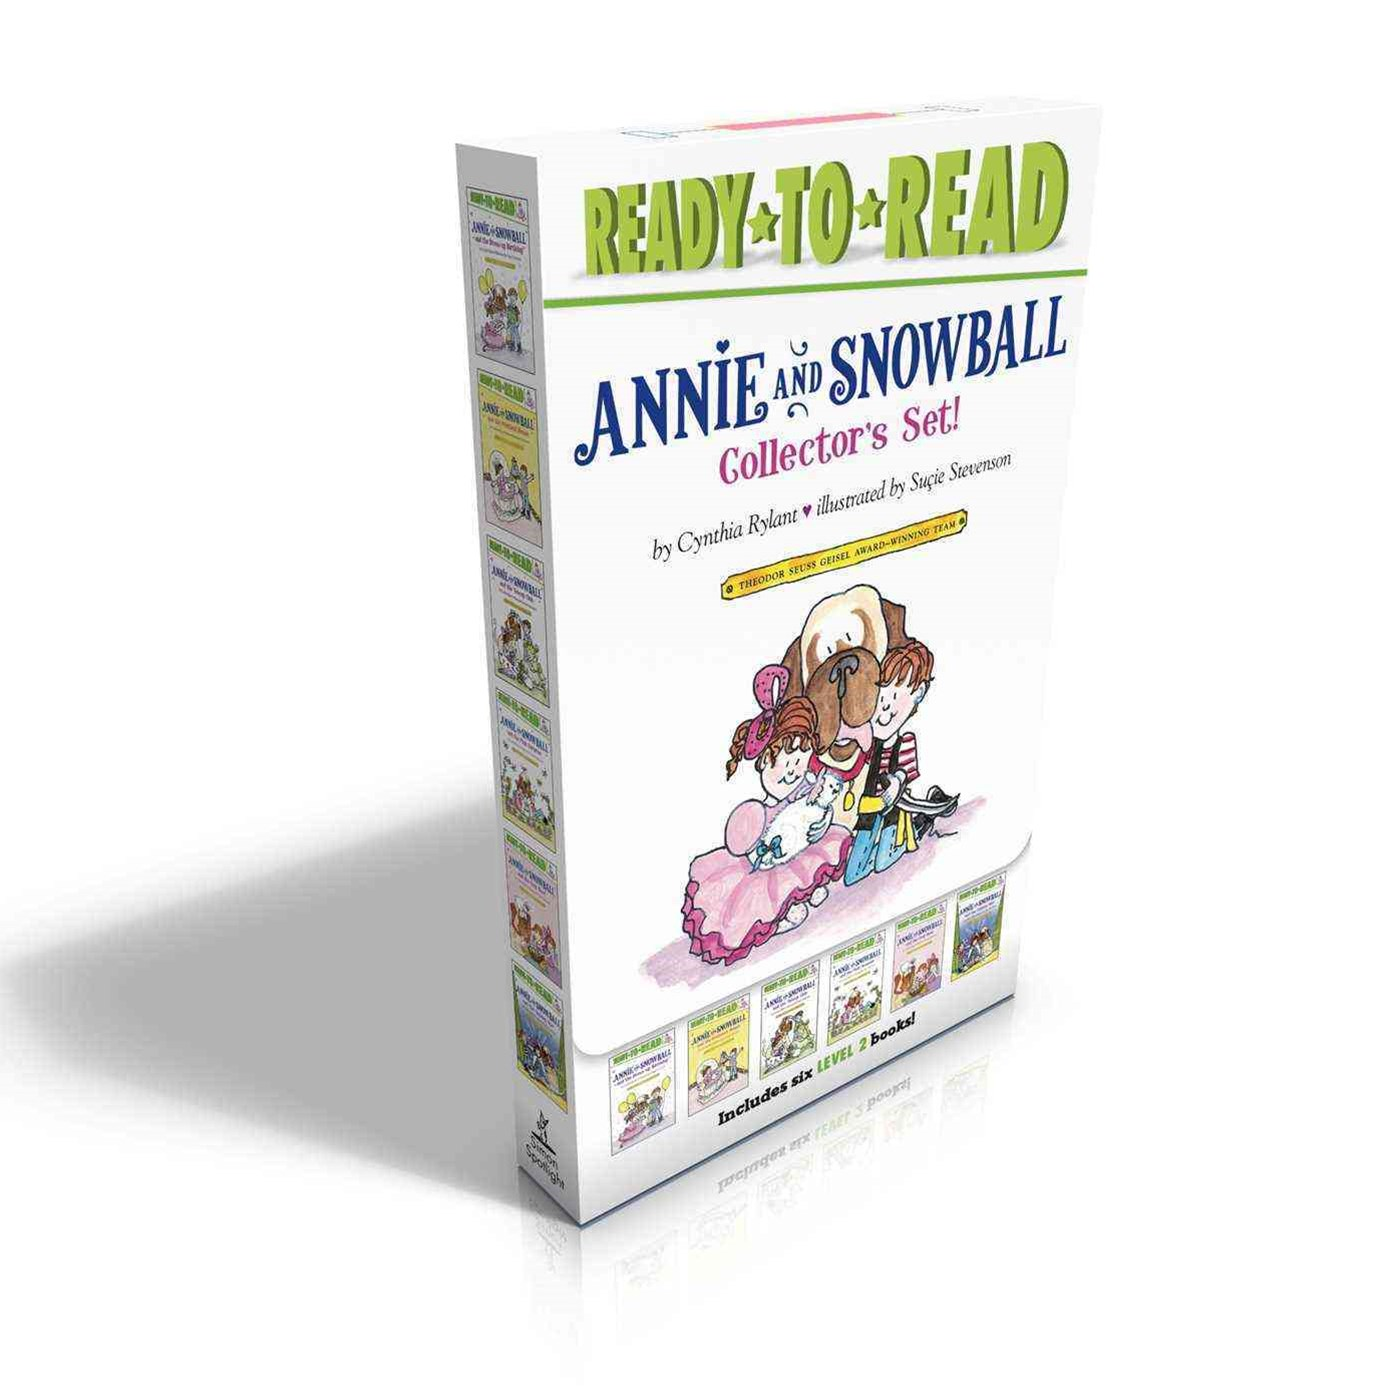 Annie and Snowball Collector's Set